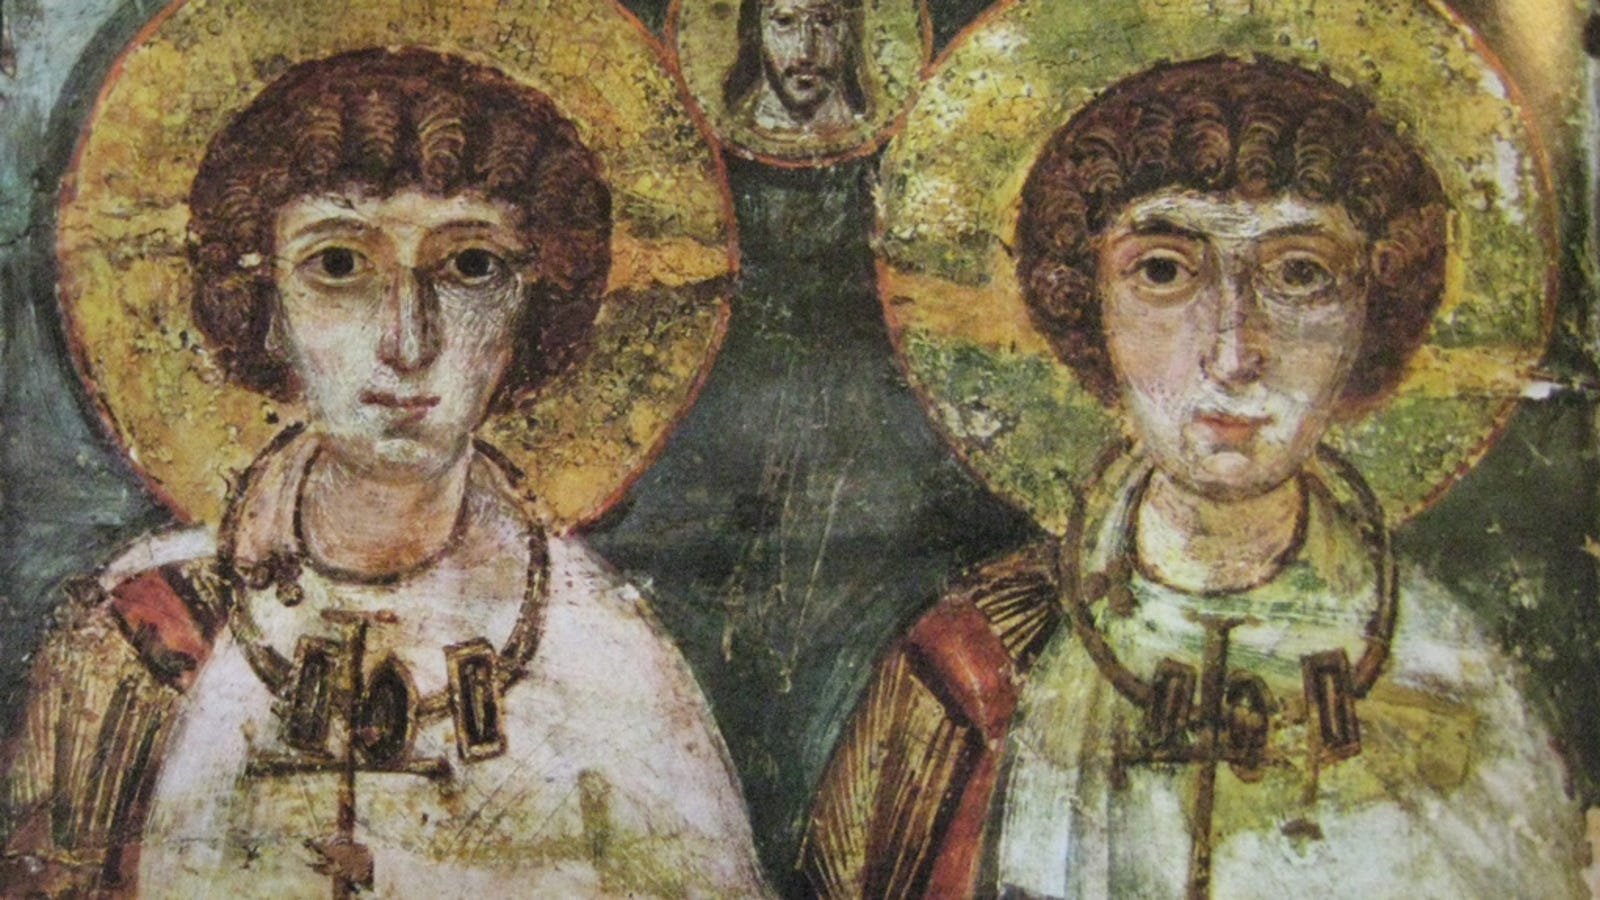 Gay marriage in the year 100 AD